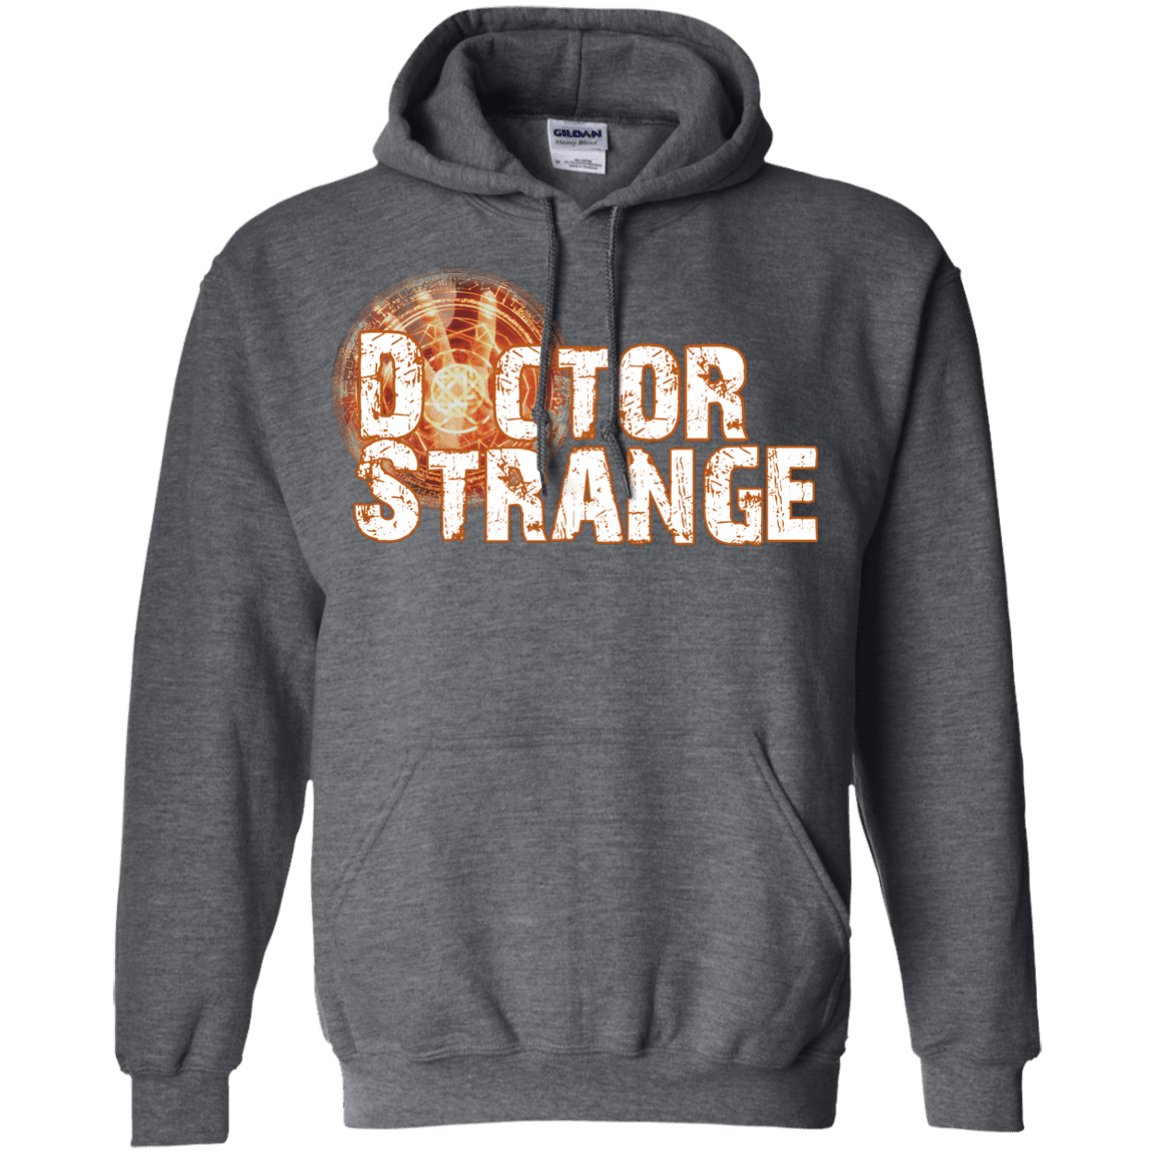 Doctor strange T Shirt, Hoodies